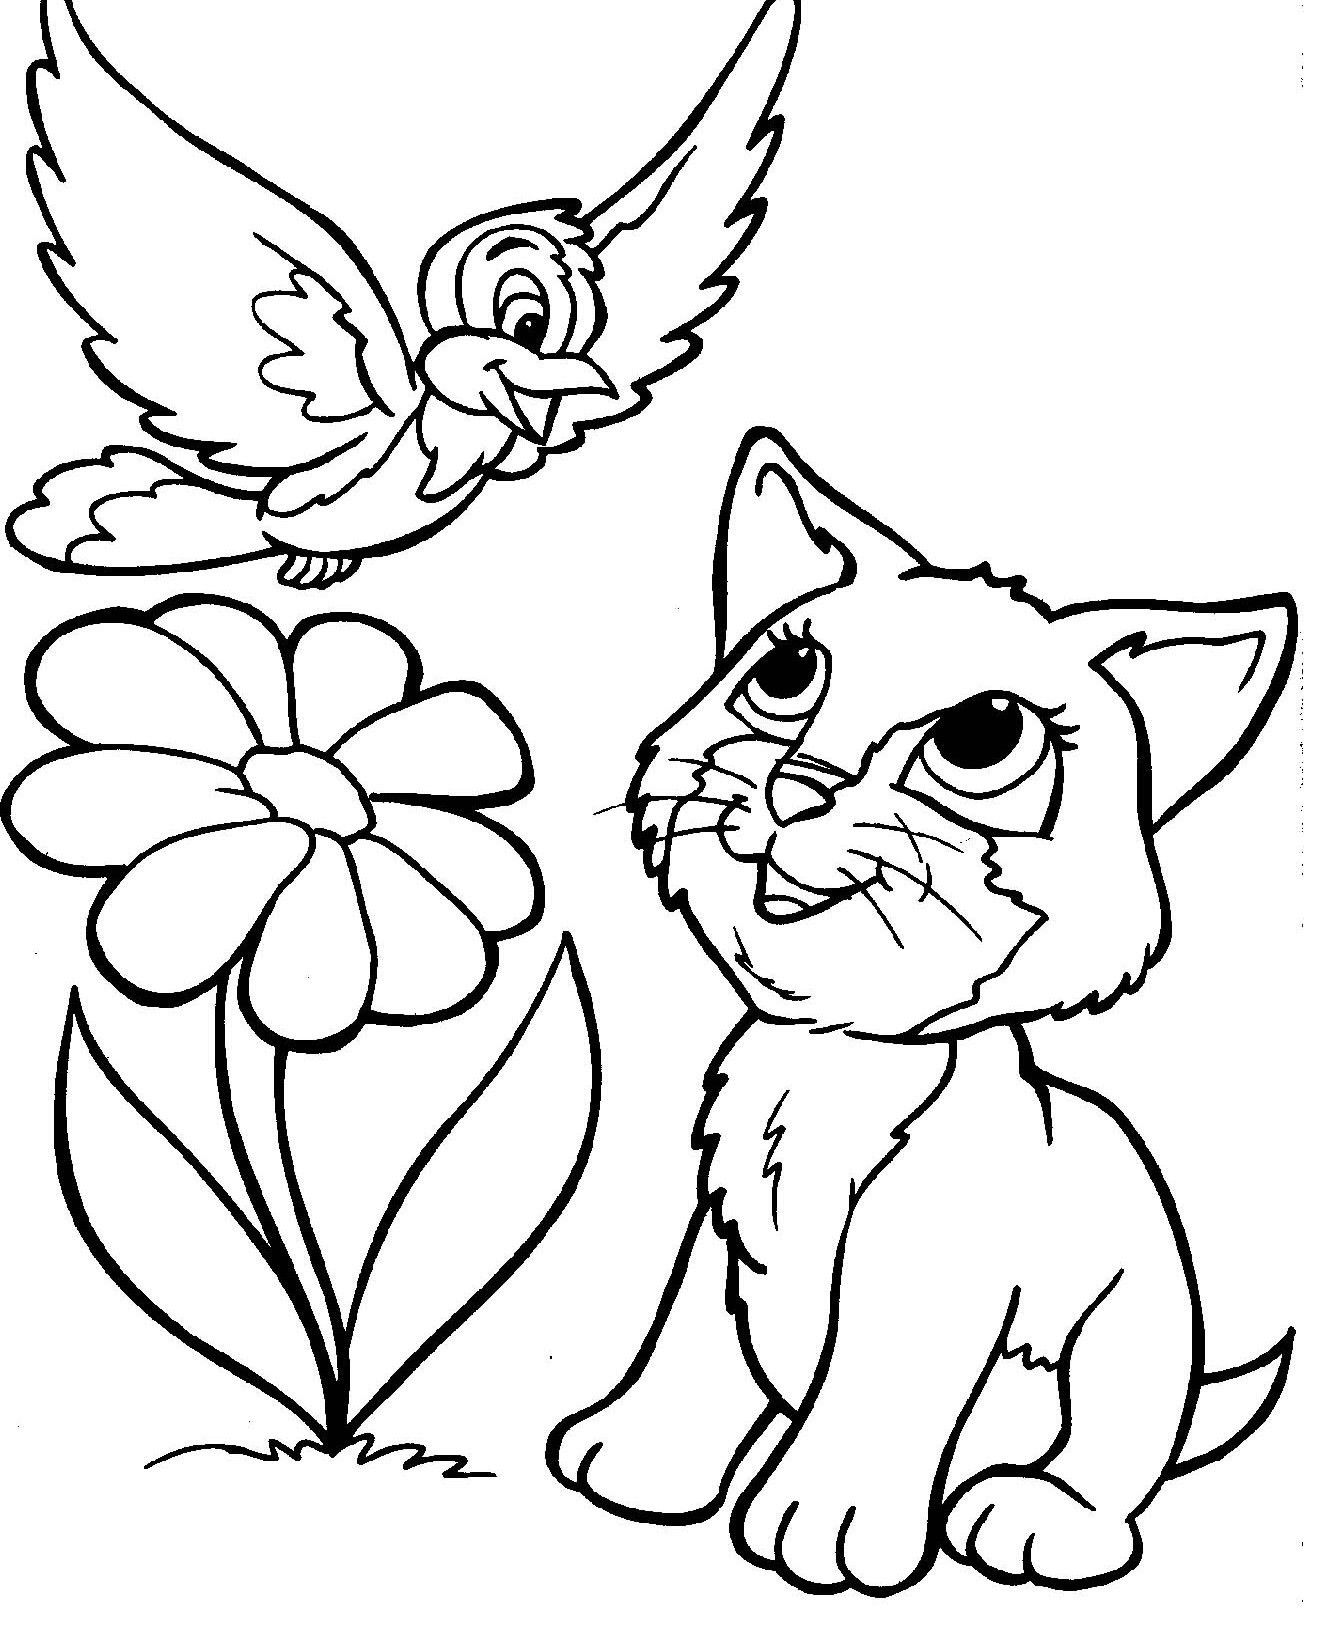 Kitty Cat Coloring Pages Through The Thousand Pictures On The Internet Regarding Kitty Cat Colorin Bird Coloring Pages Animal Coloring Pages Kittens Coloring